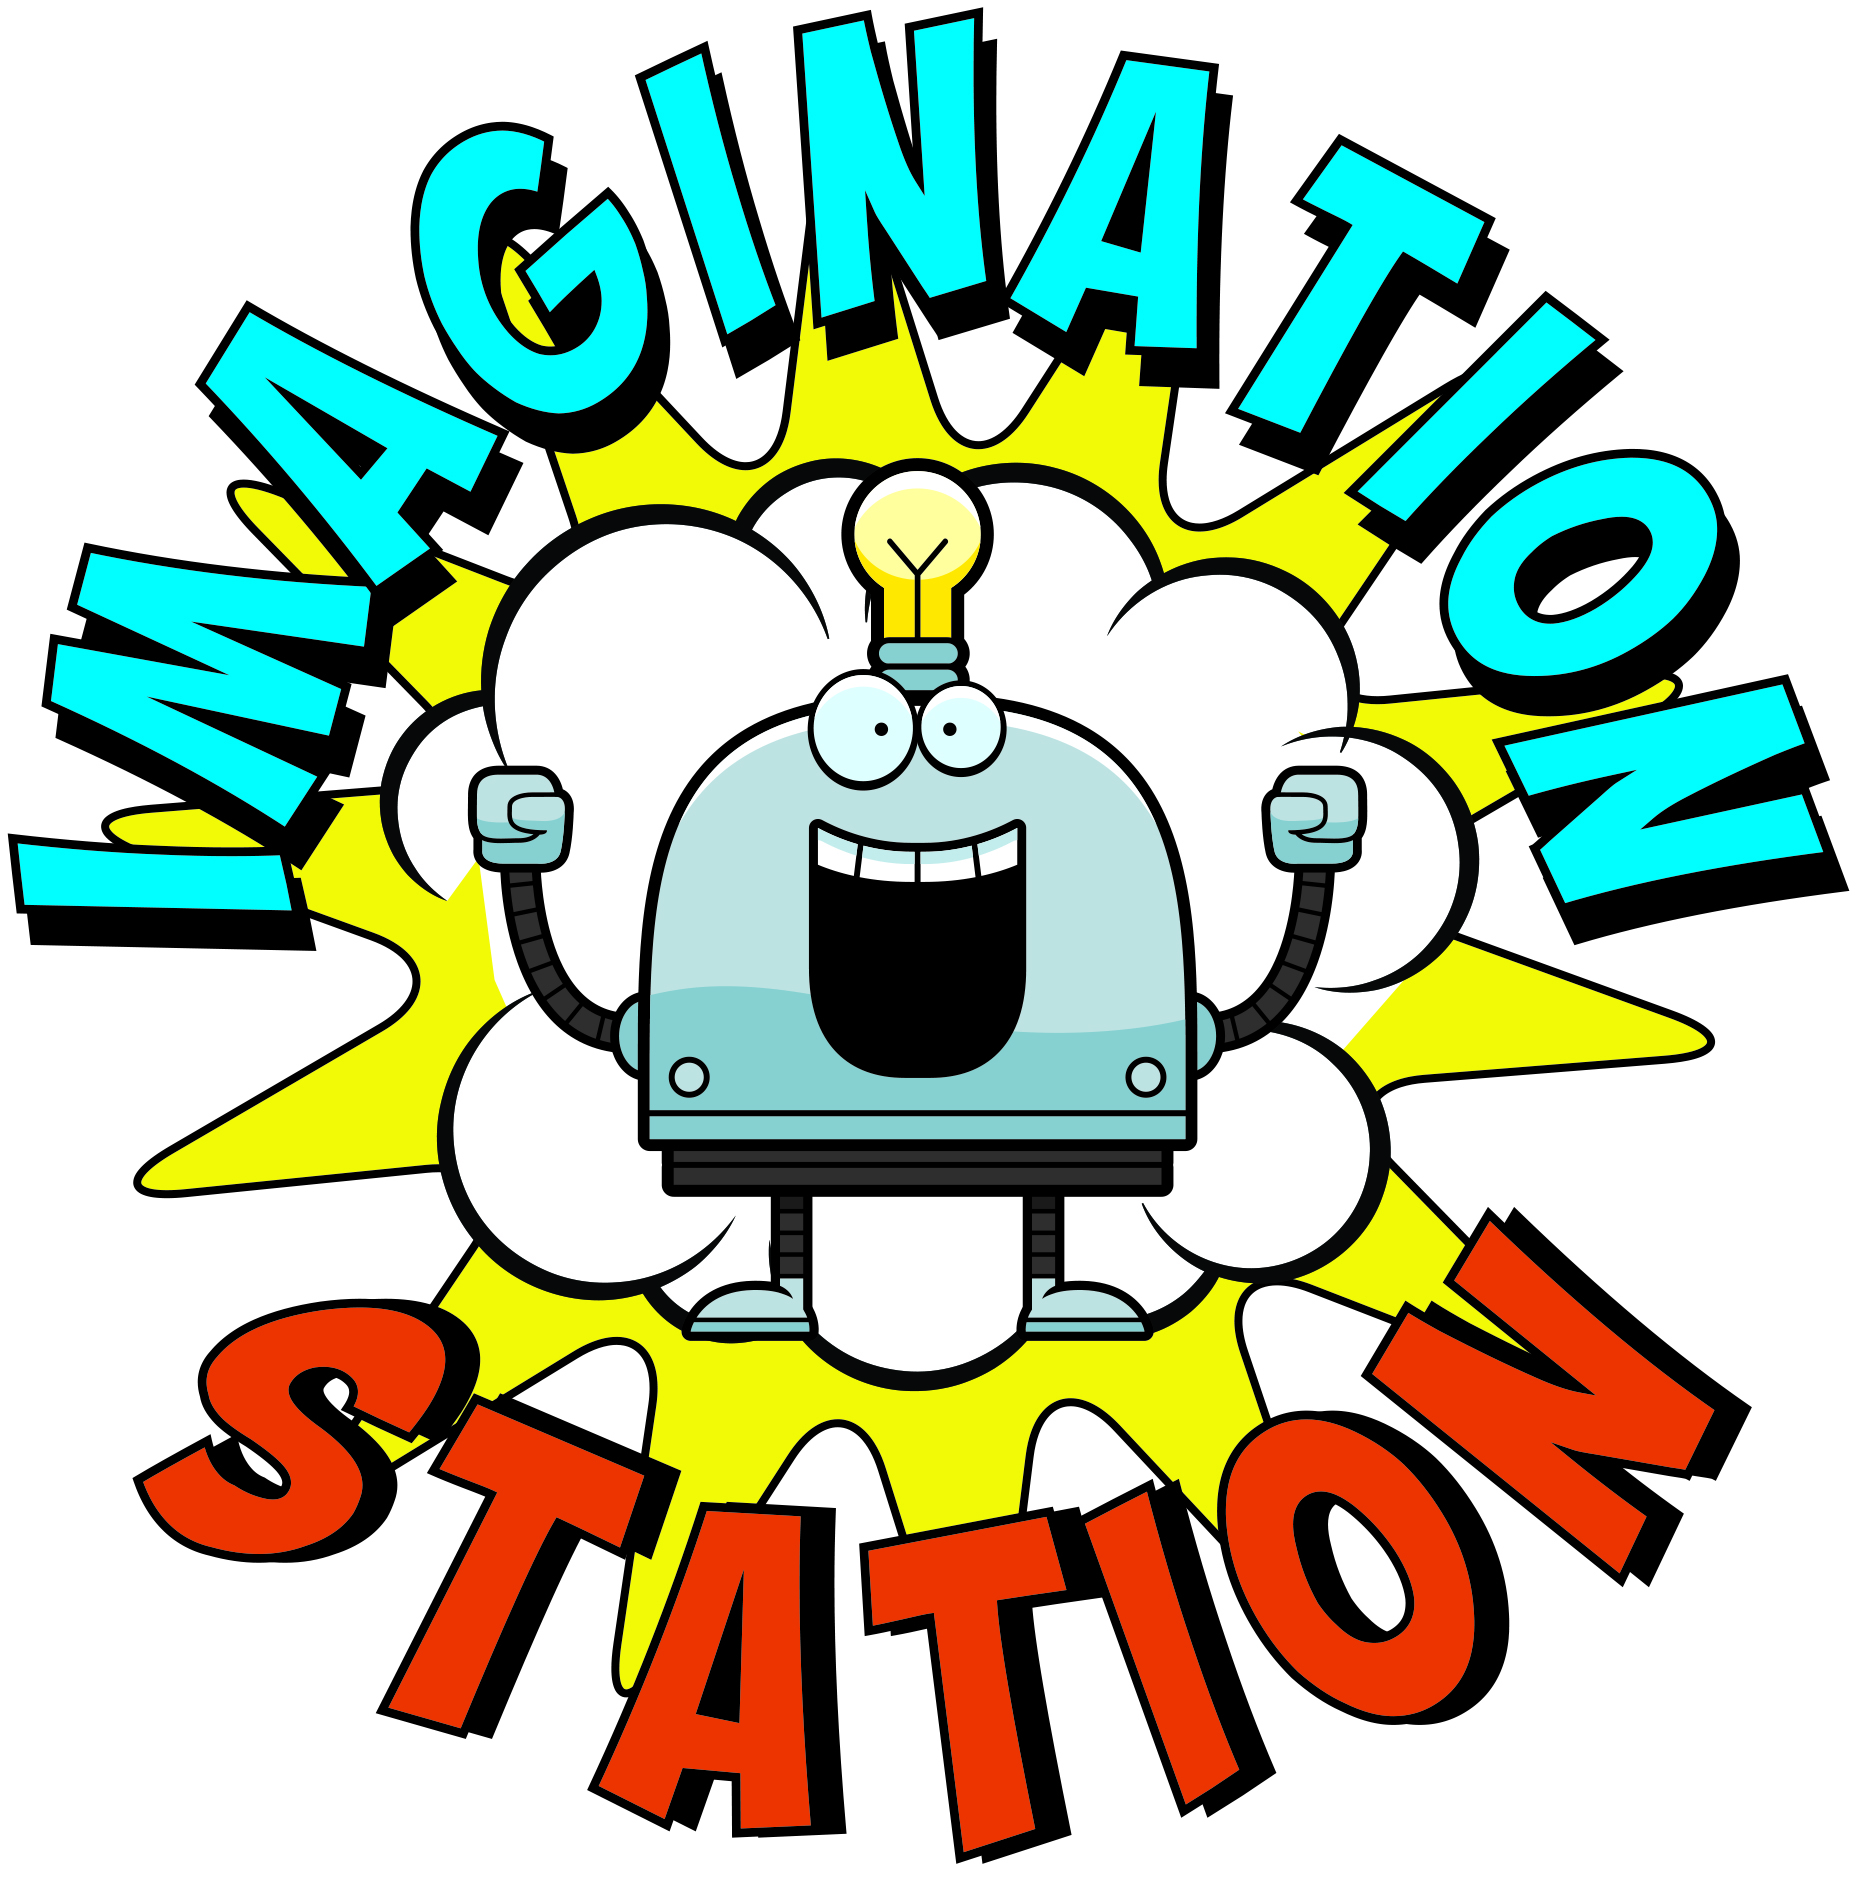 ImaginationStations LOGO.jpg